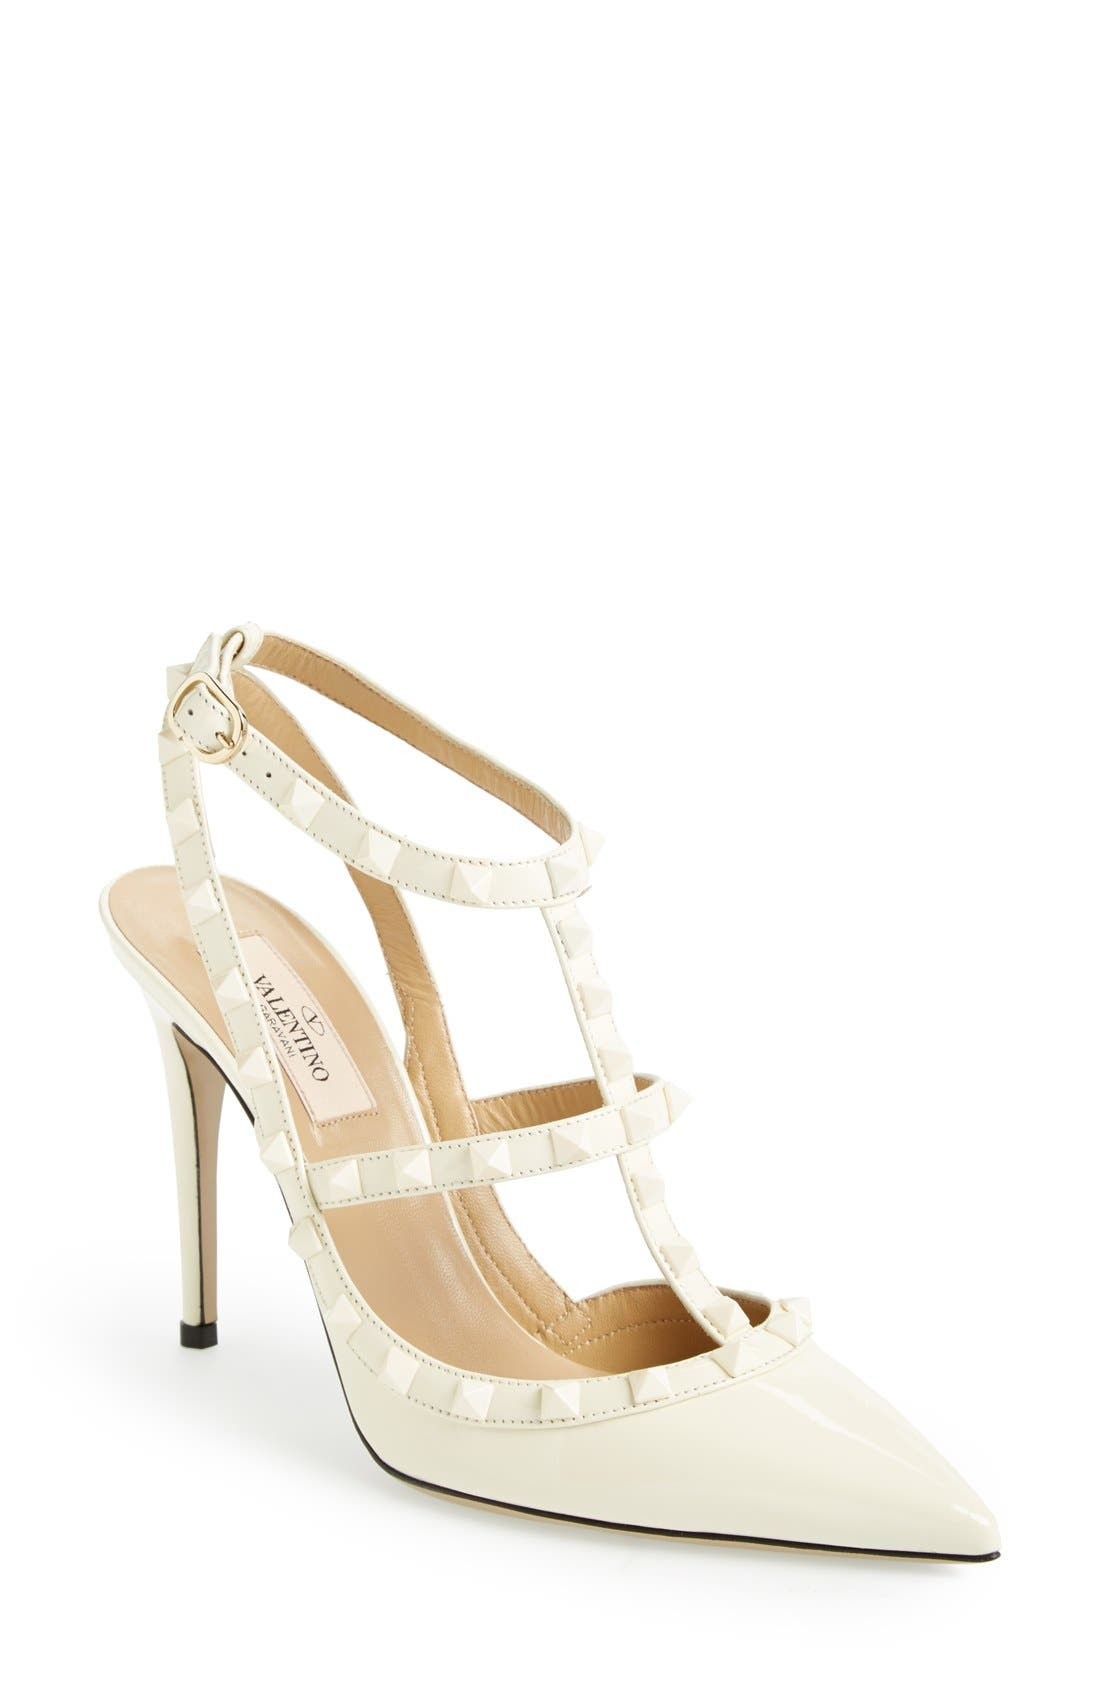 Alternate Image 1 Selected - Valentino 'Punkouture' T-Strap Pump